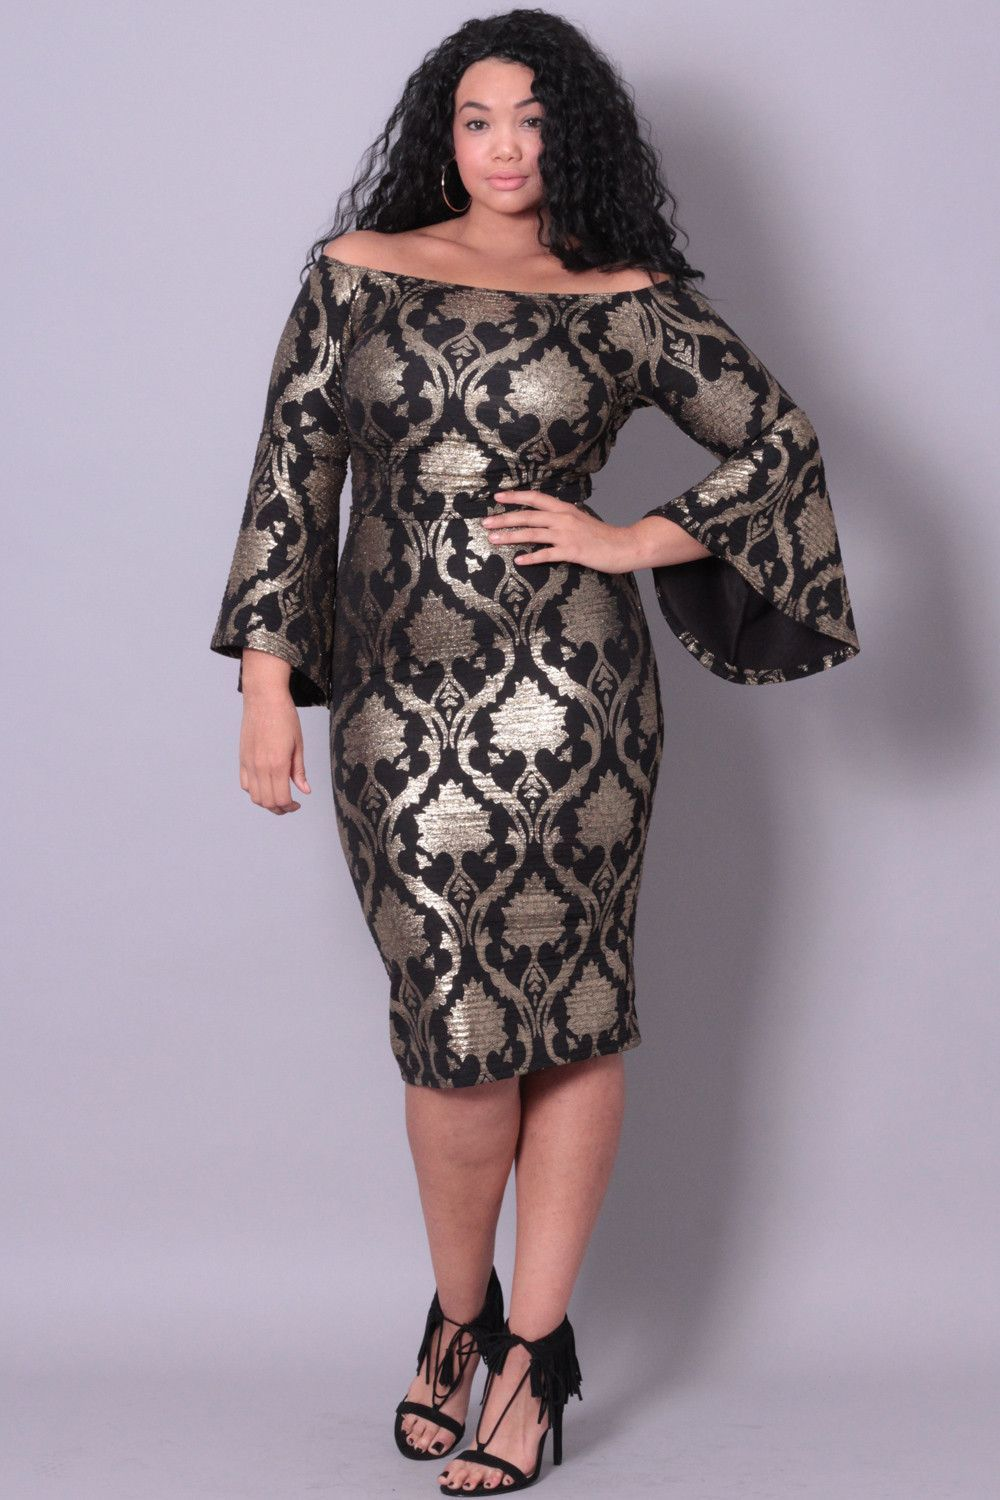 aPlus Size Jacquard 2-Piece Dress - Black/Gold